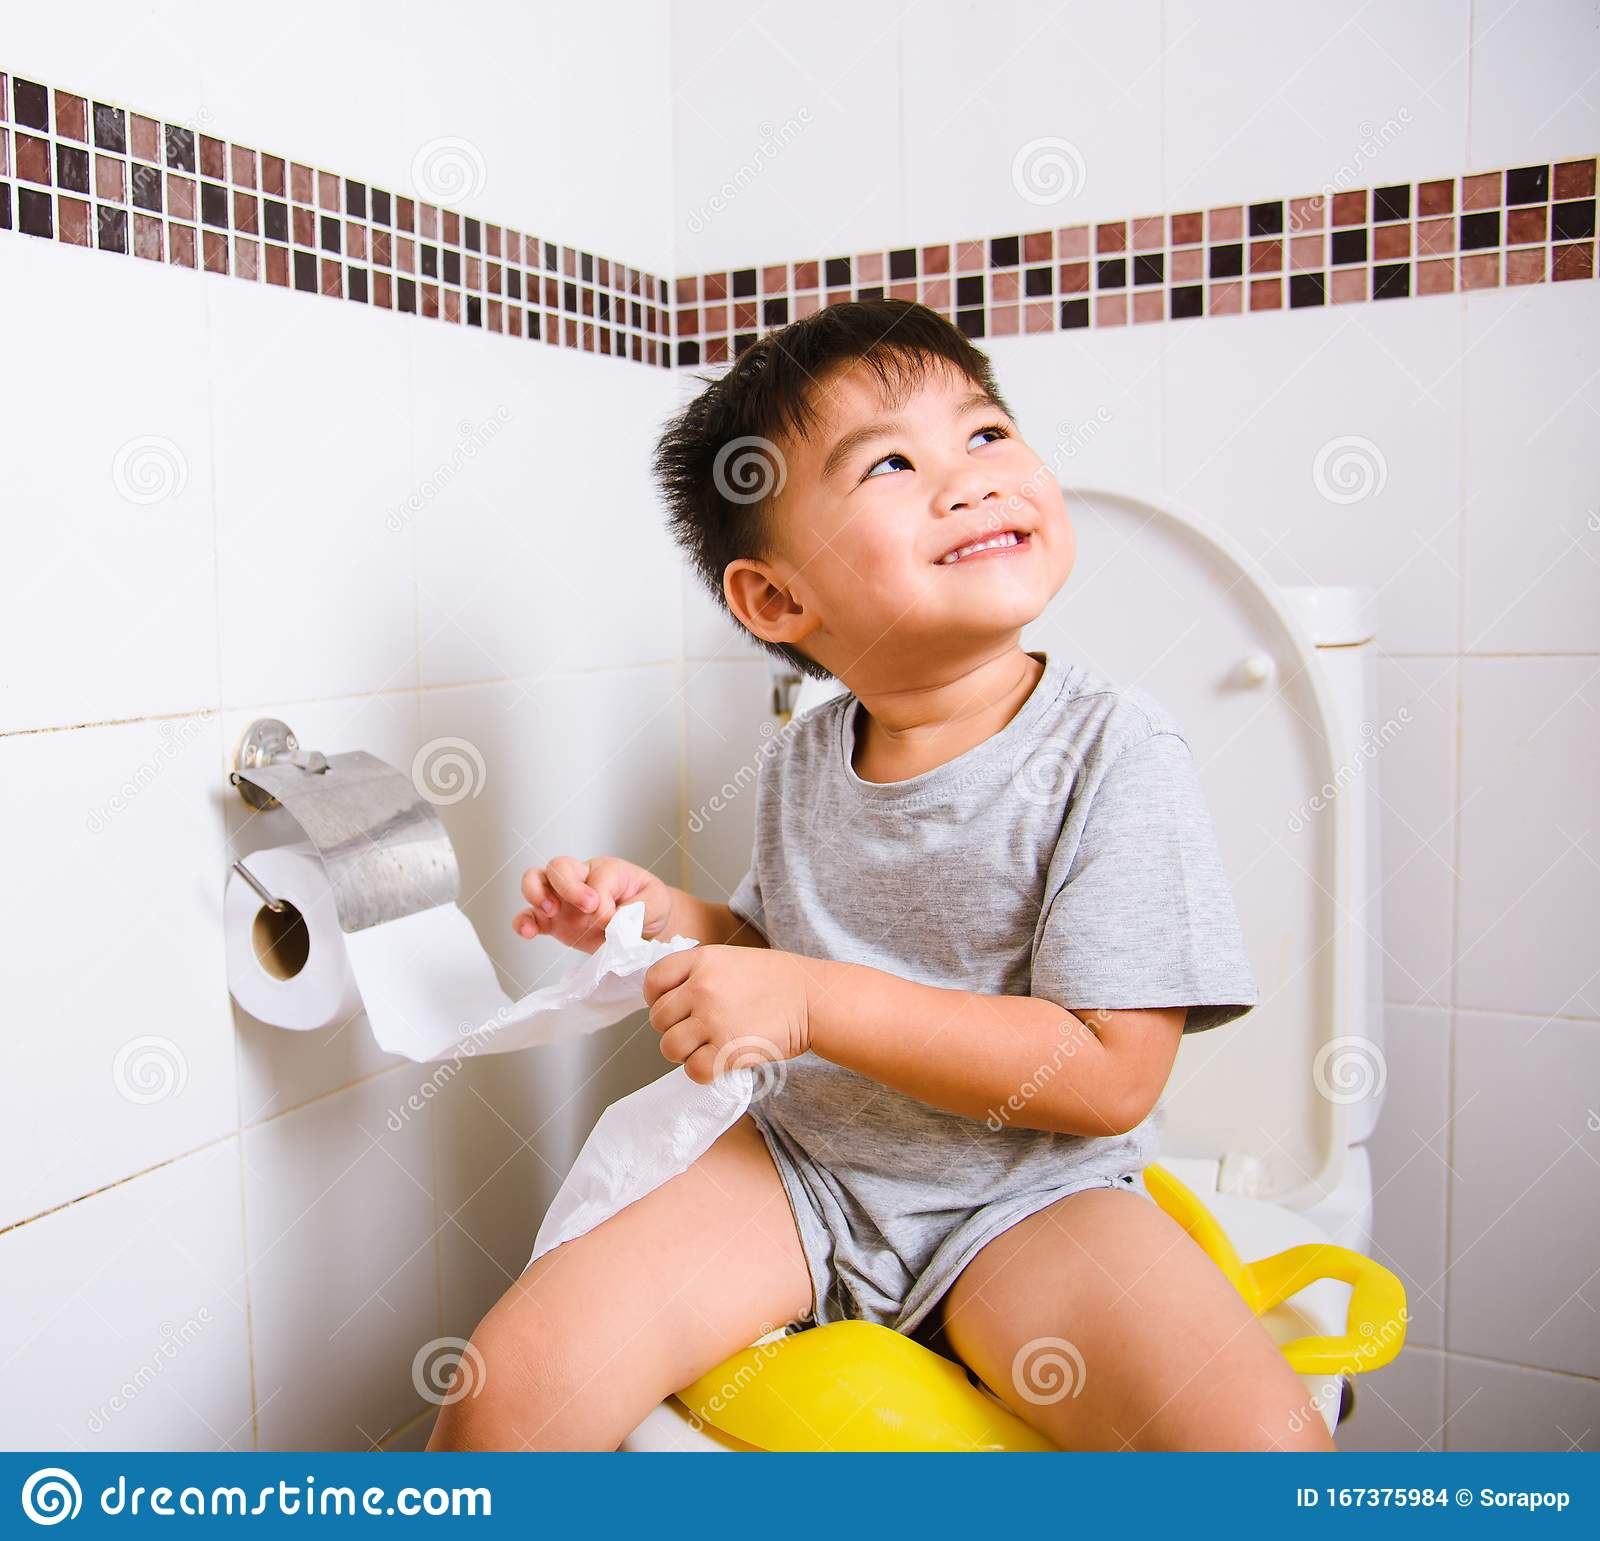 Asian 2 - 3 Years Old Toddler Boy Child Sitting On Toilet